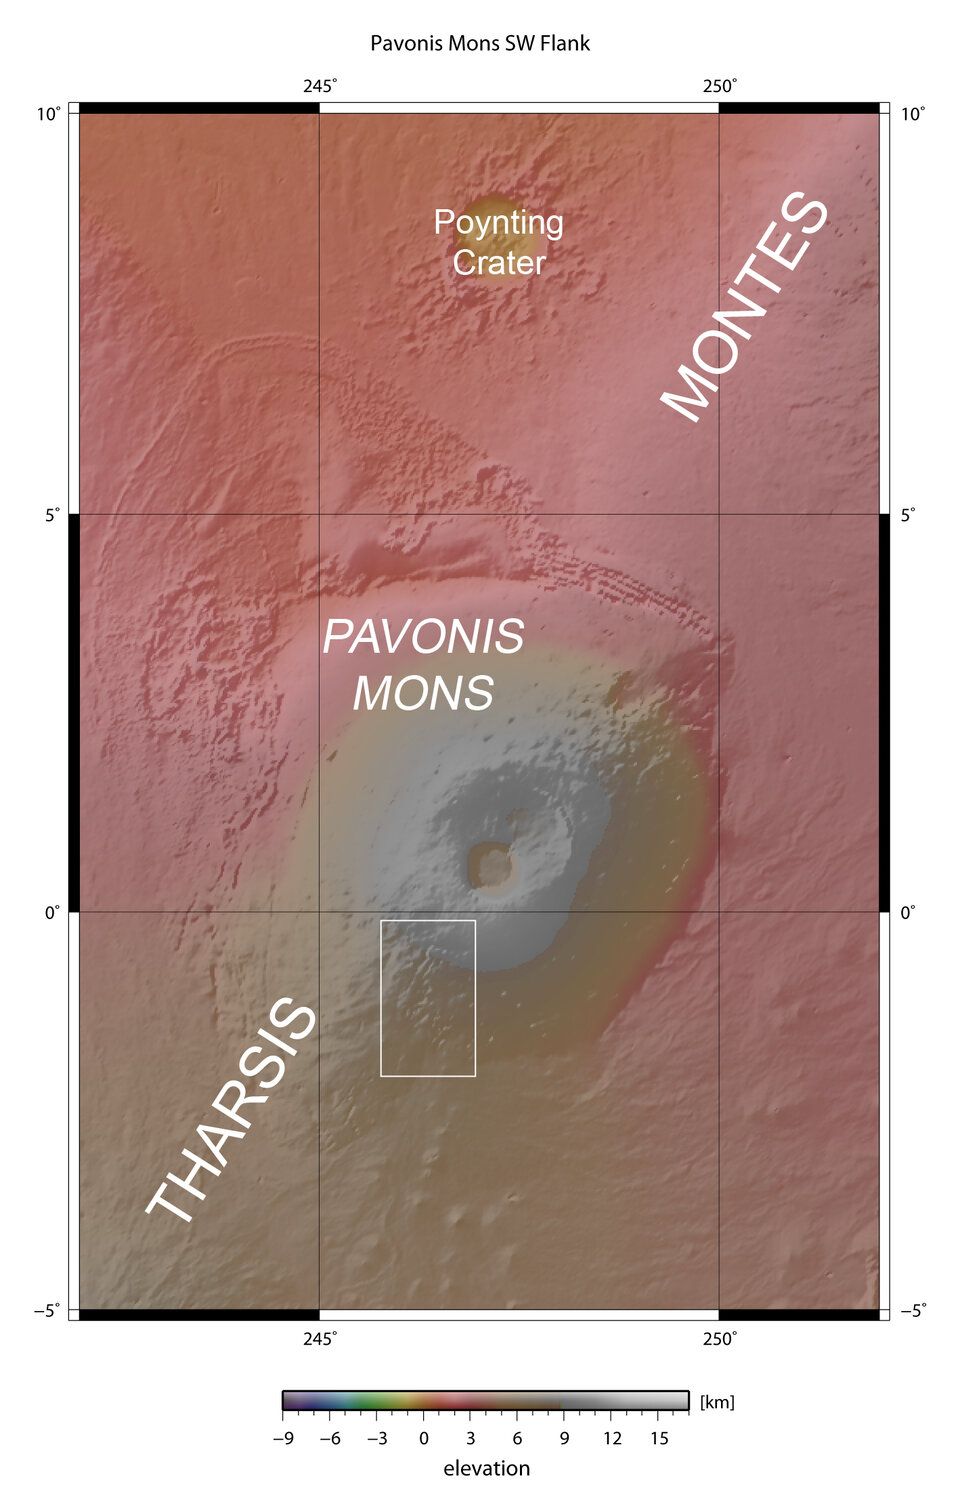 Map showing Pavonis Mons in context